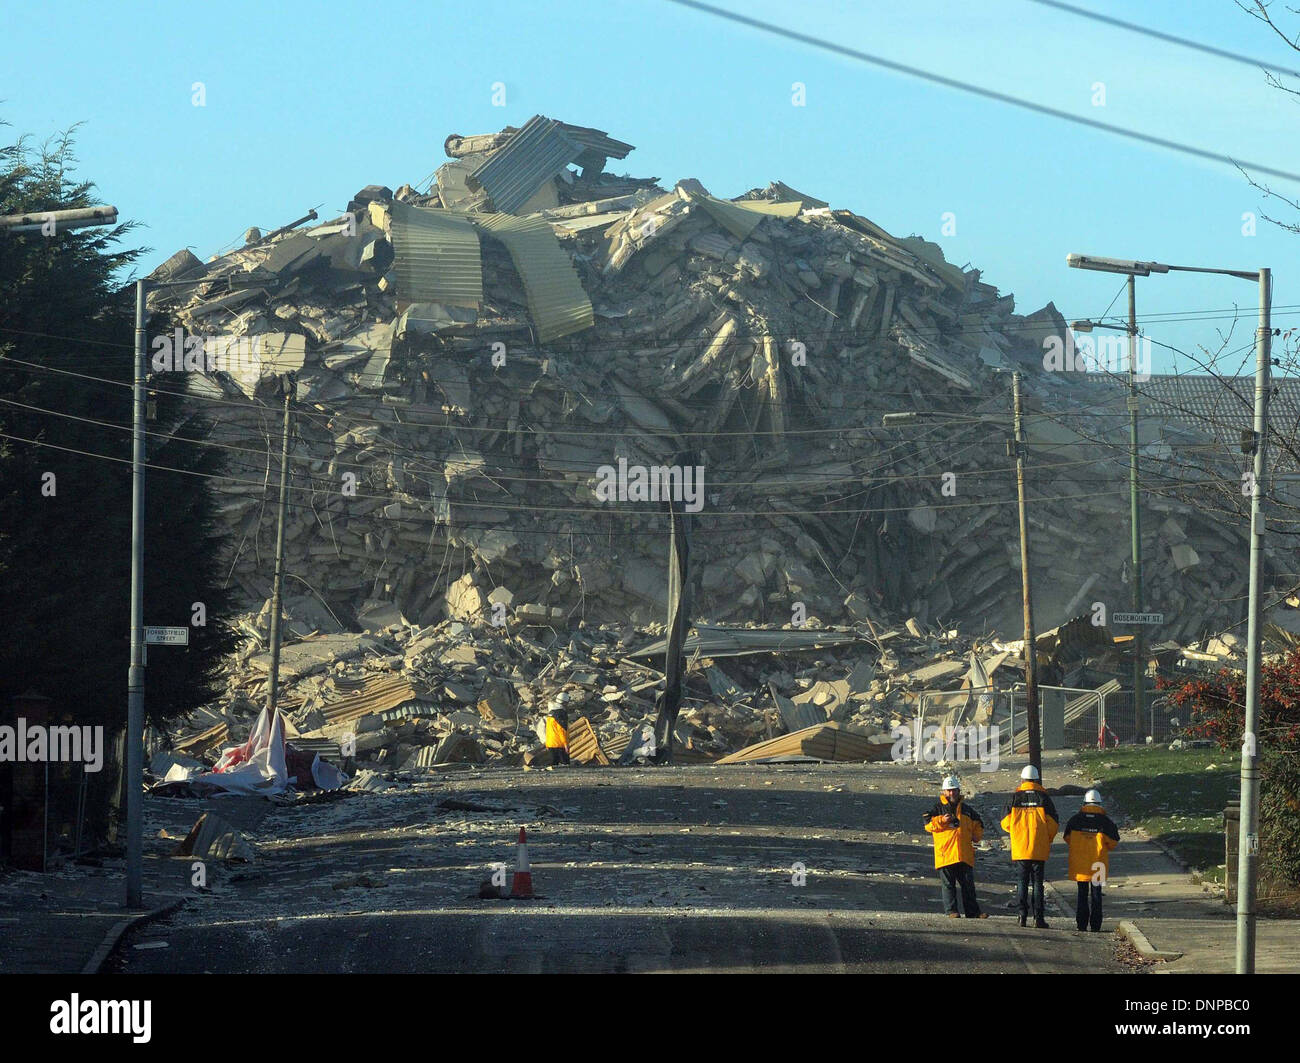 A Glasgow Housing Association multi-storey high rise is demolished on  Roystonhill area of Glasgow. Stock Photo